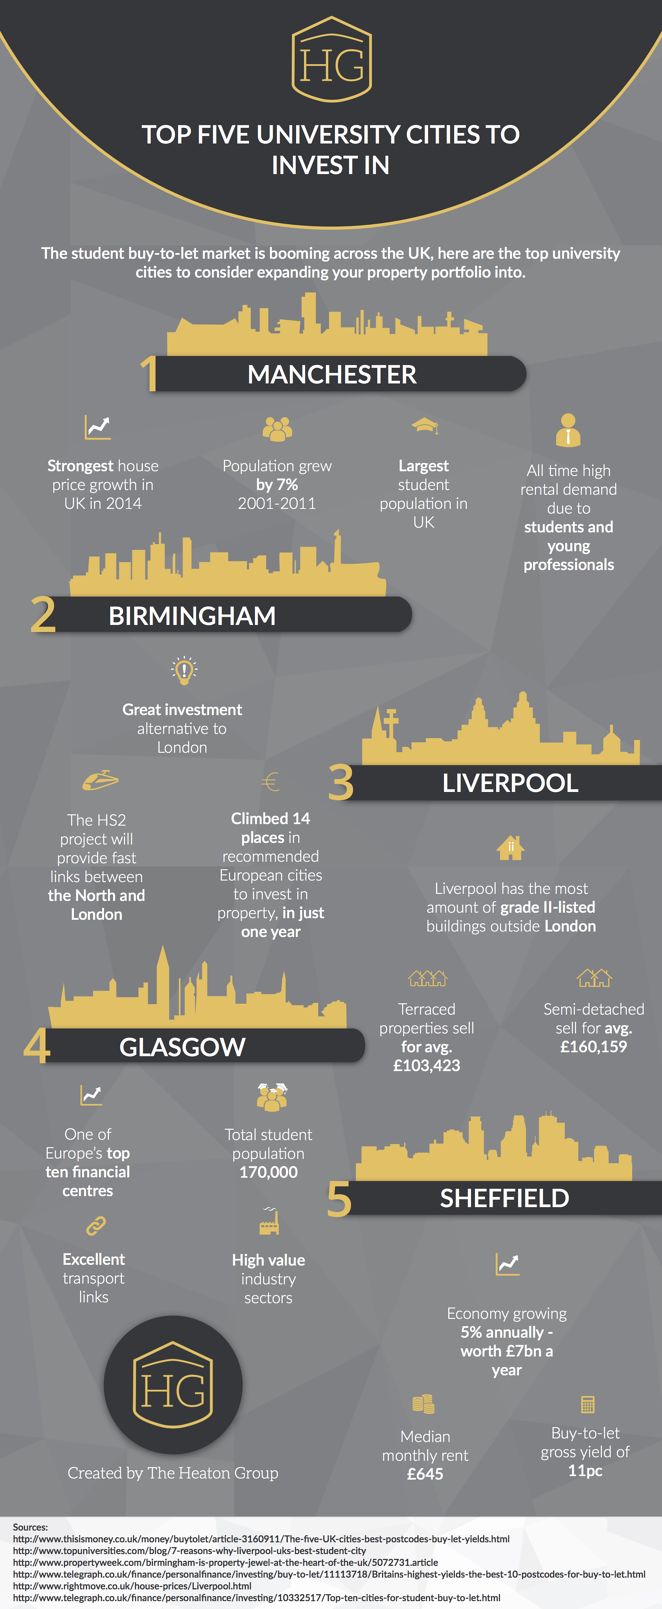 Top 5 University Cities to Invest In [INFOGRAPHIC]